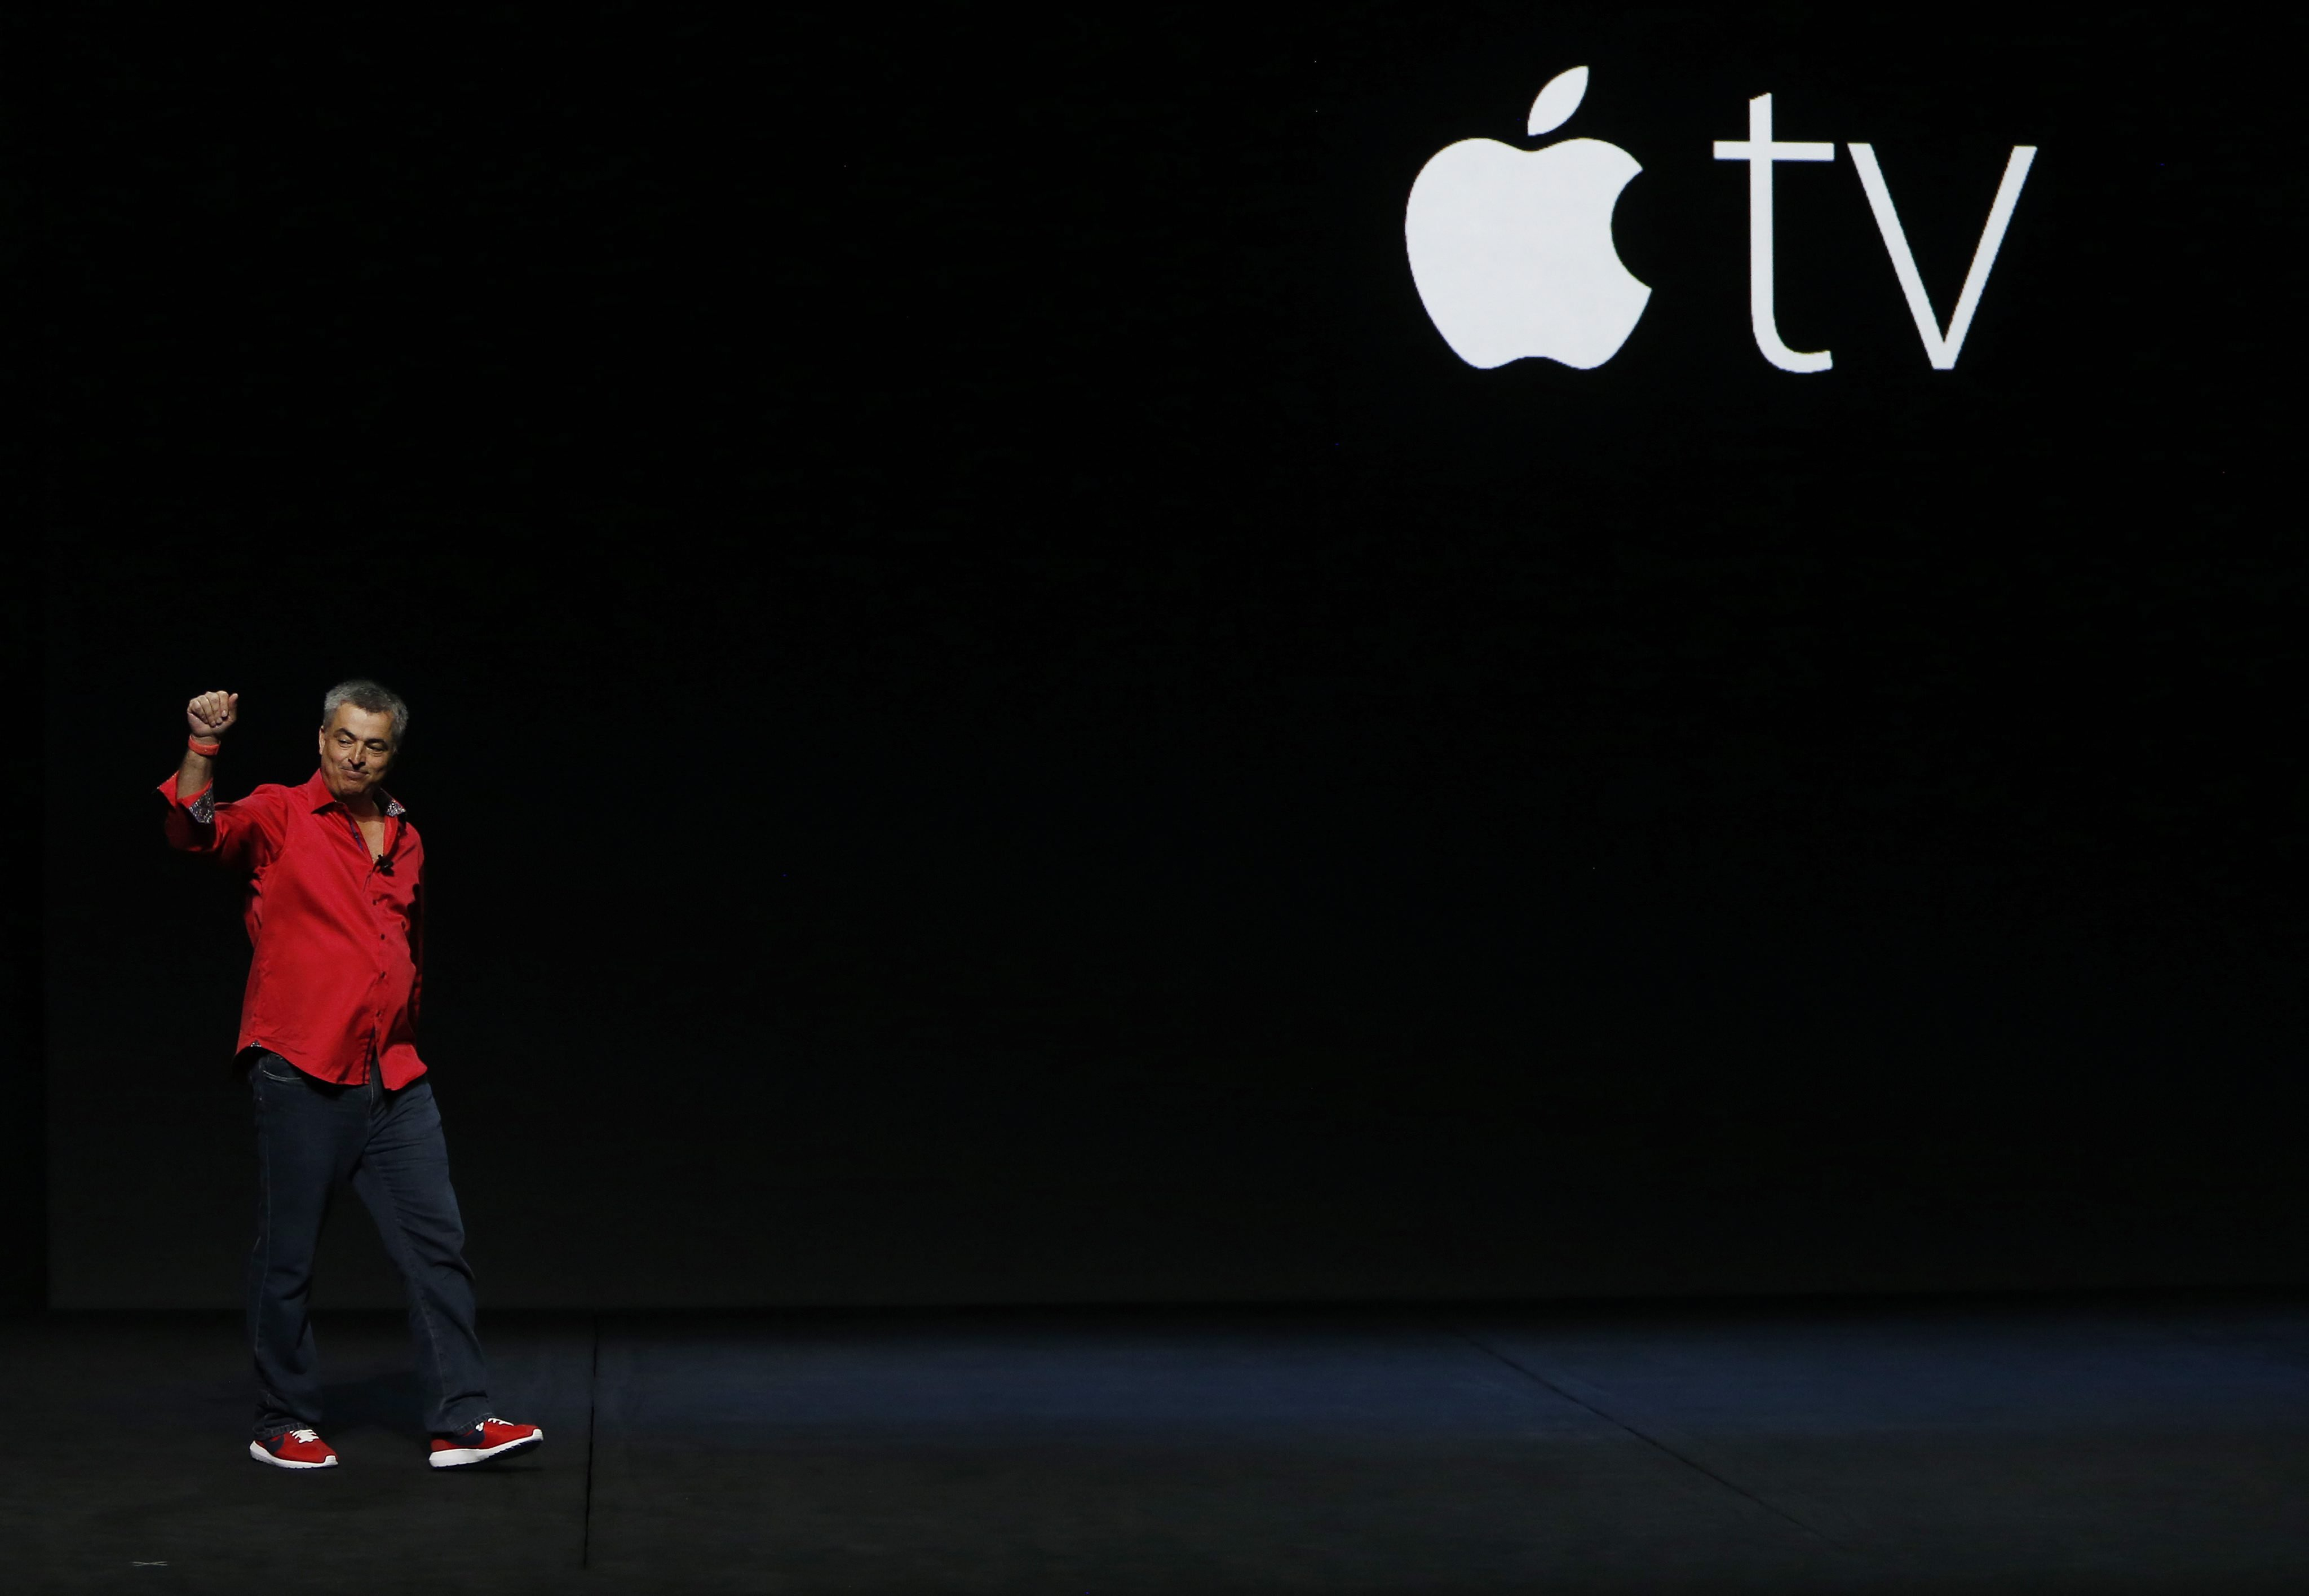 Apple Senior Vice President of Internet Software and Services Eddy Cue talks about the new Apple TV during an Apple launch event at the Bill Graham Civic Auditorium in San Francisco, on Sept. 9, 2015.